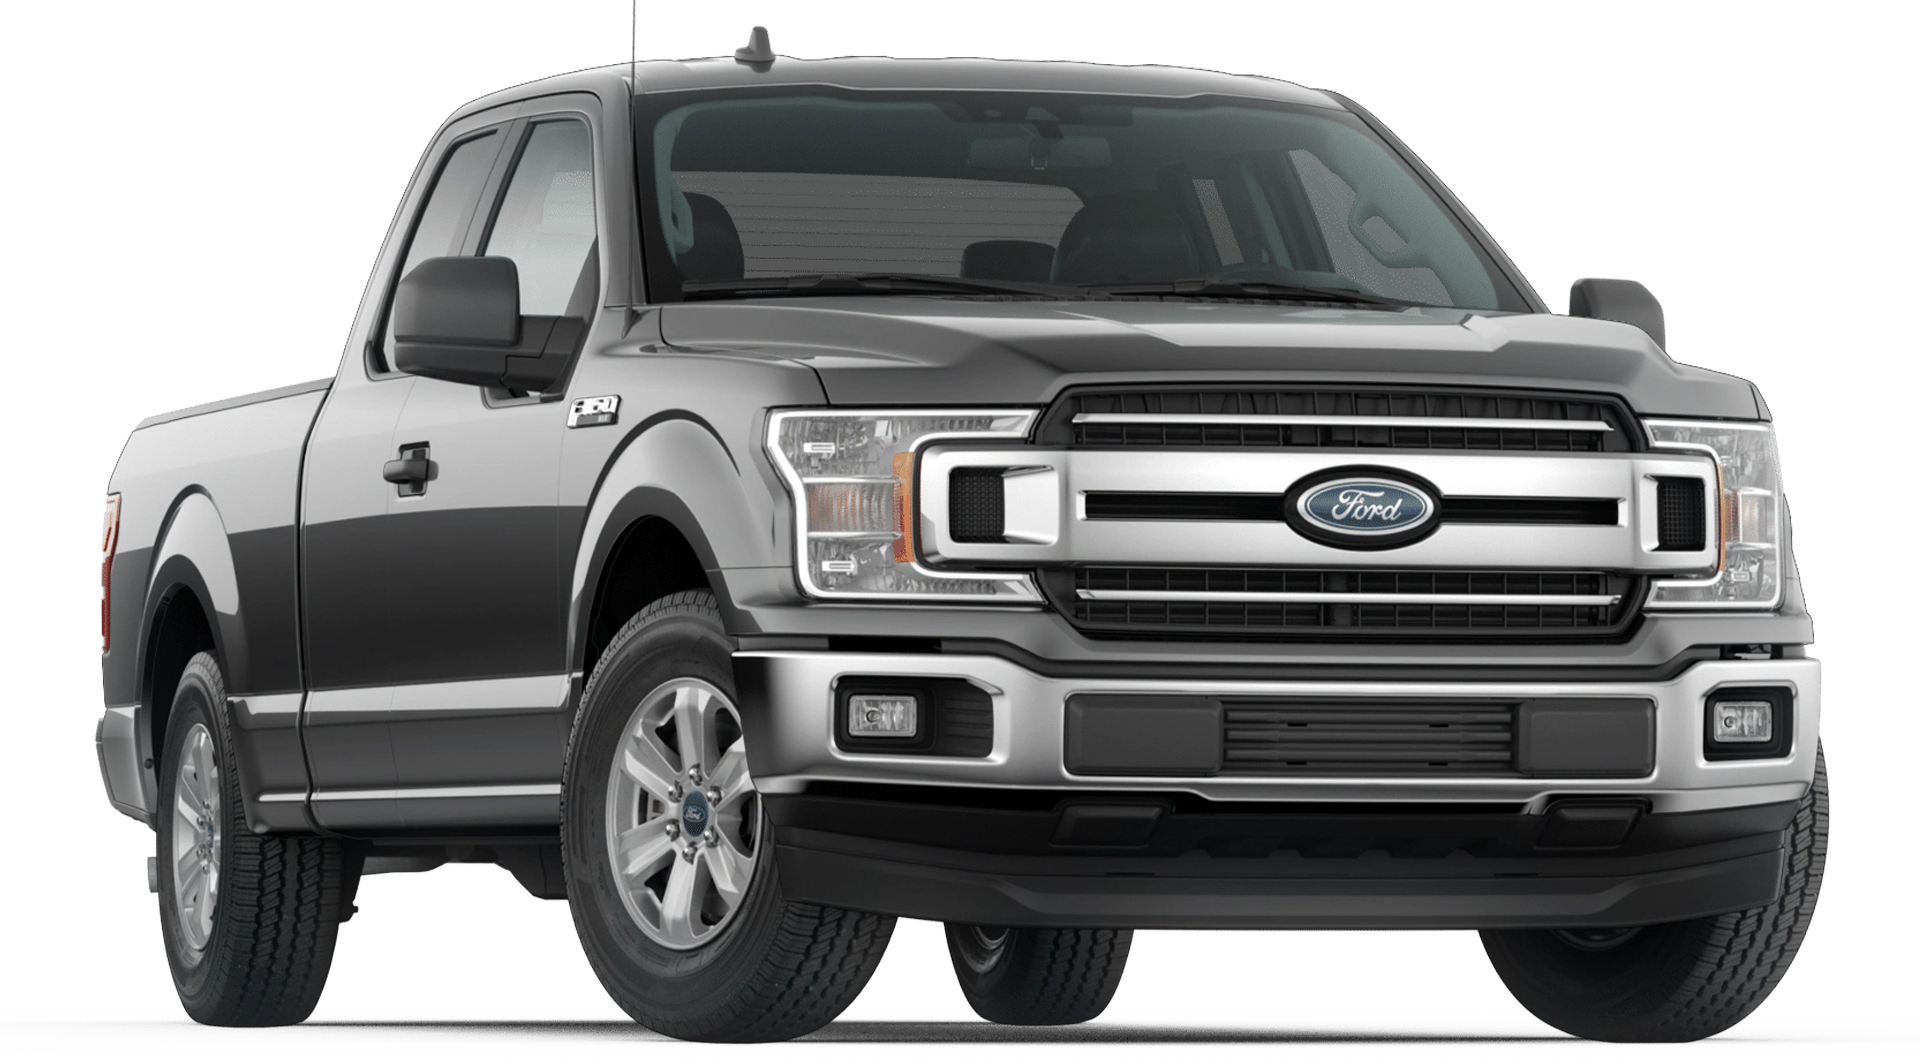 2020 Ford F-150 XLT Supercab shown